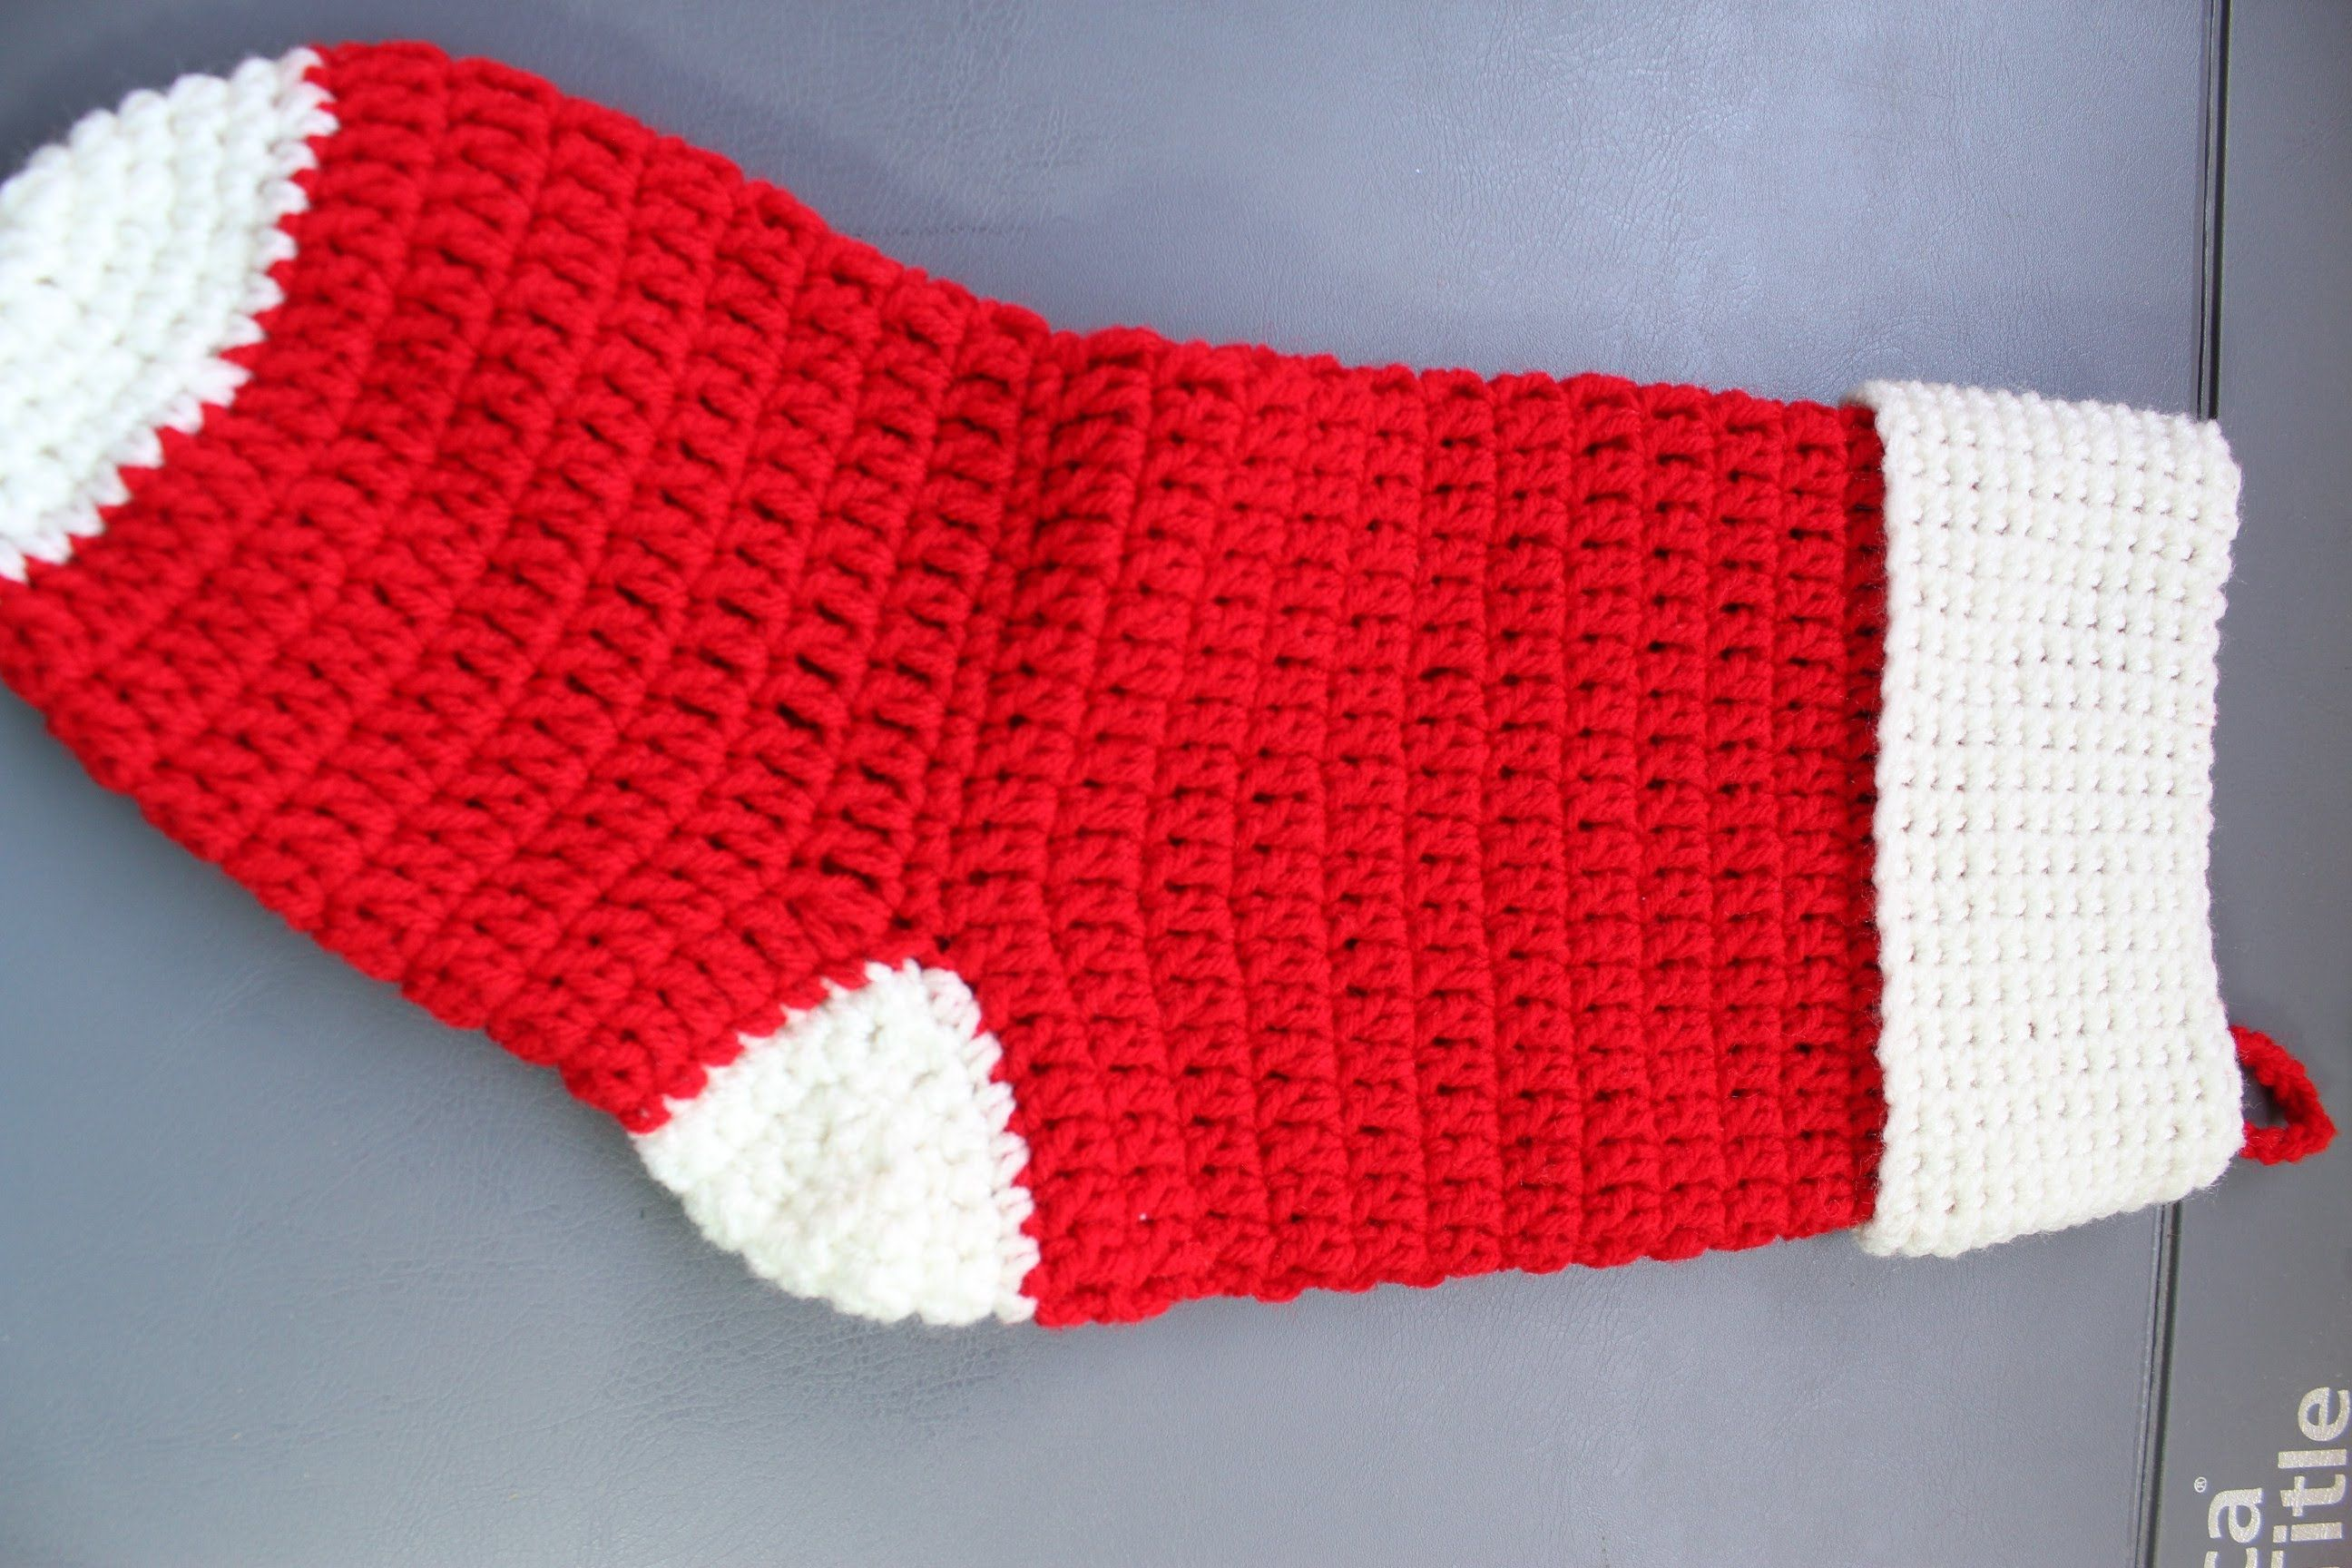 How to Crochet Christmas Stocking Cuff | ^ Christmas YARN ...